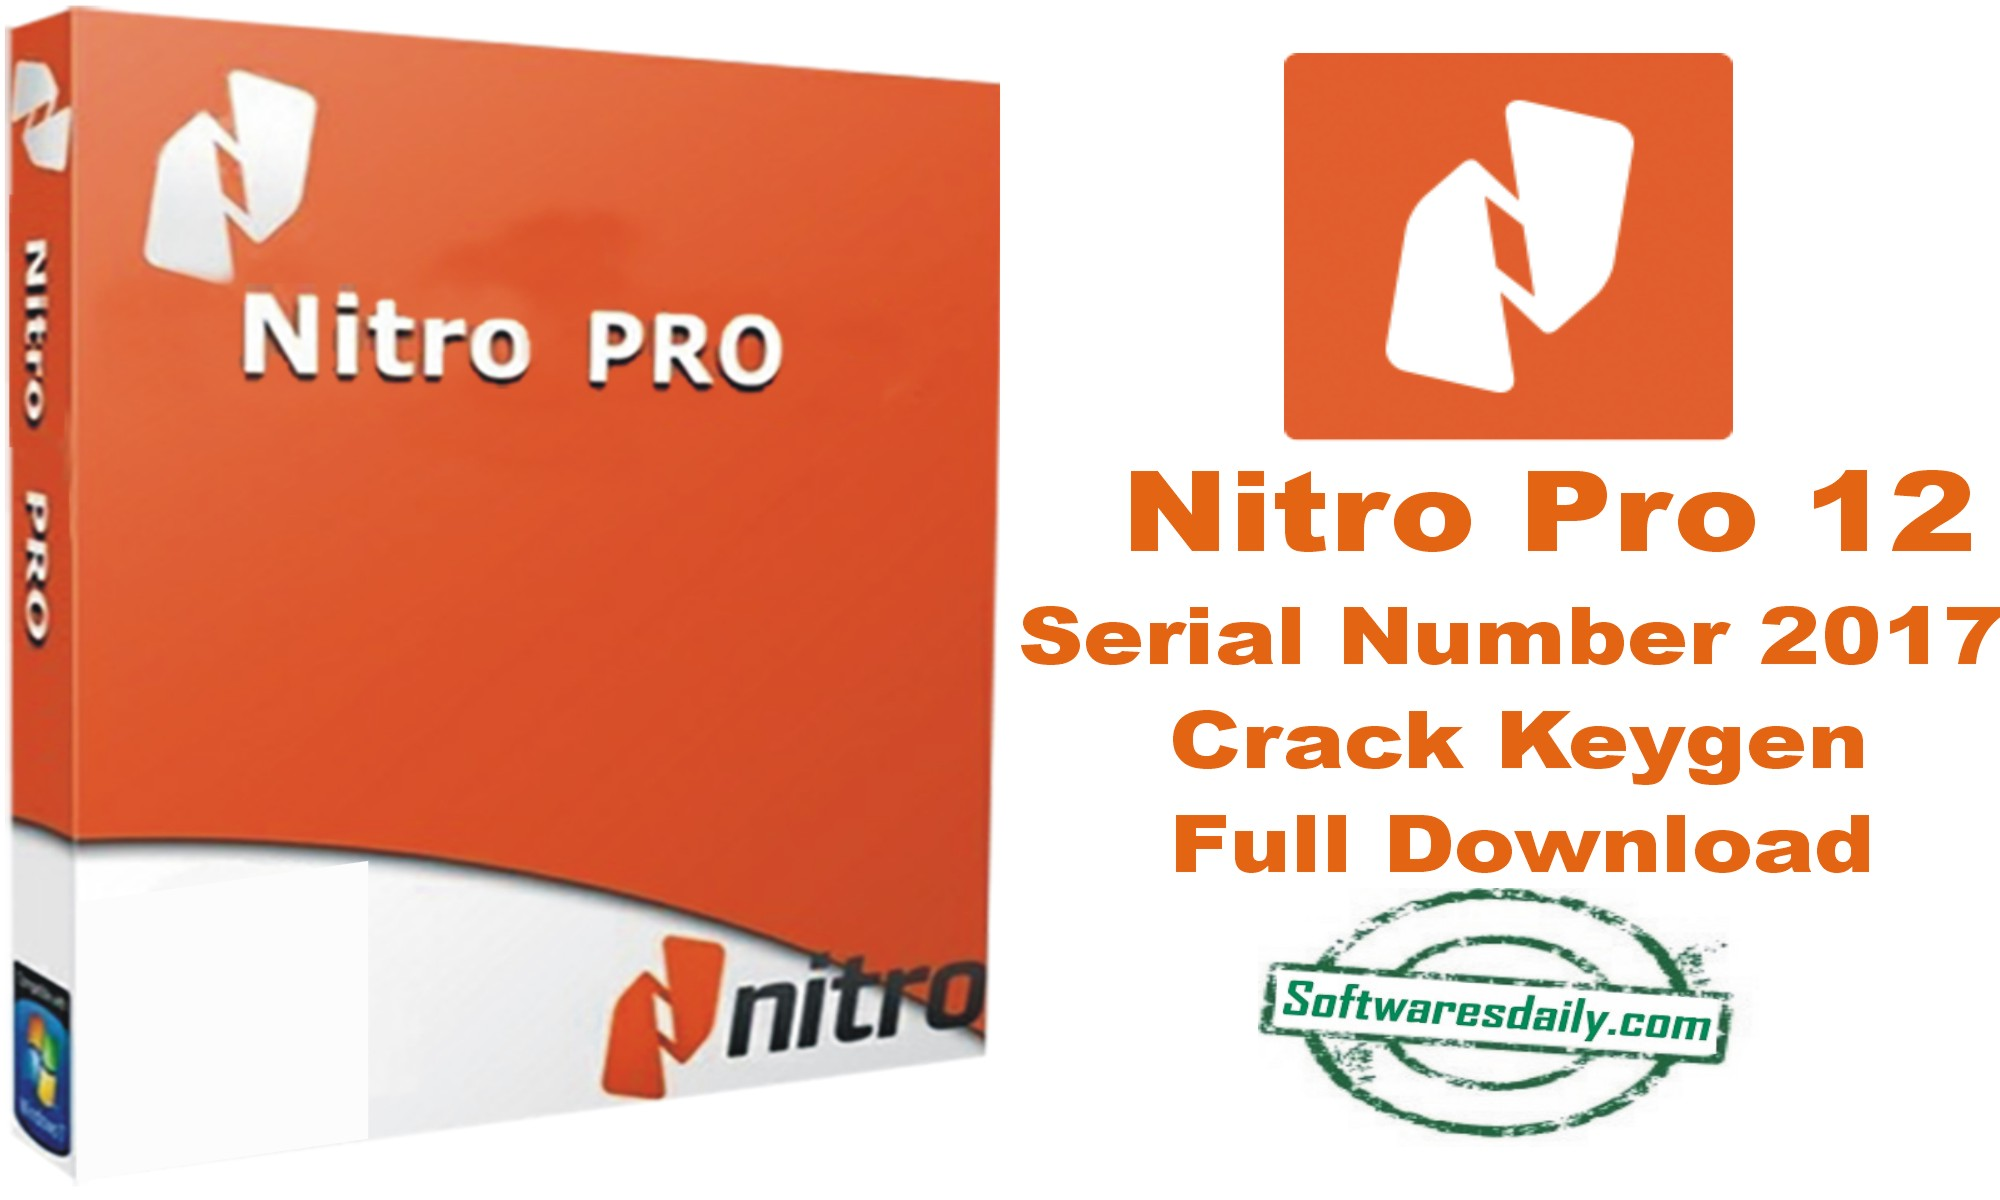 nitro pro 10 free download full version with crack